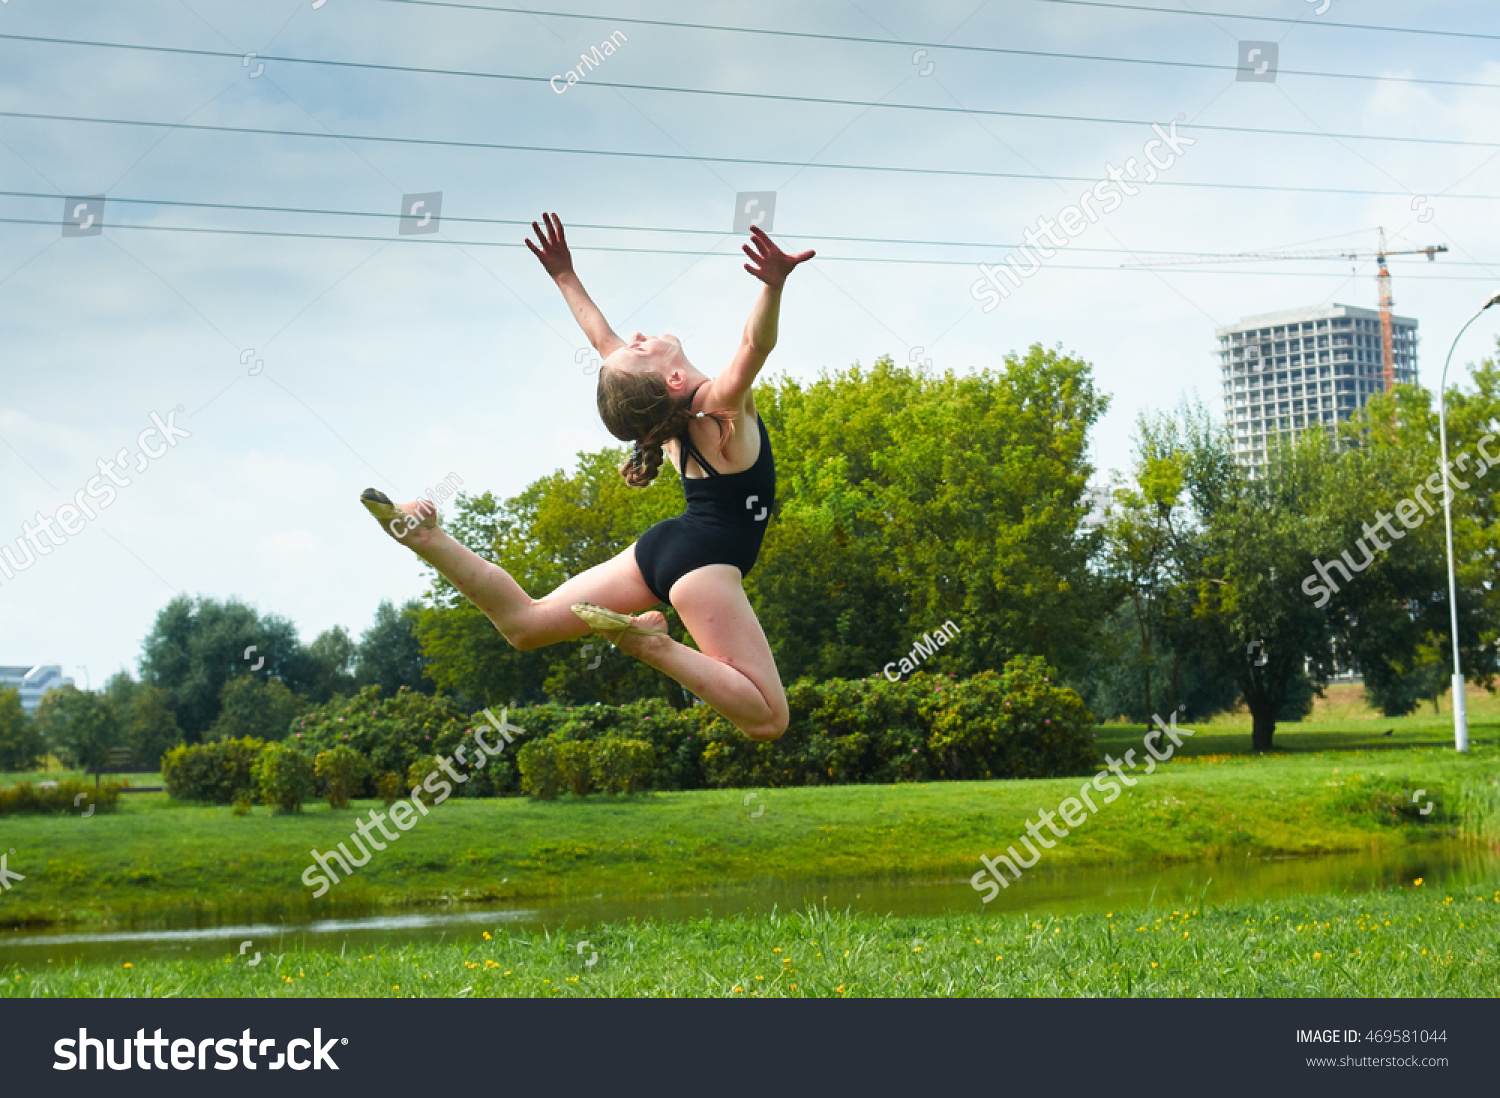 preteen stretch Young beautiful preteen girl doing gymnastic stretch jumps yoga outdoors in park